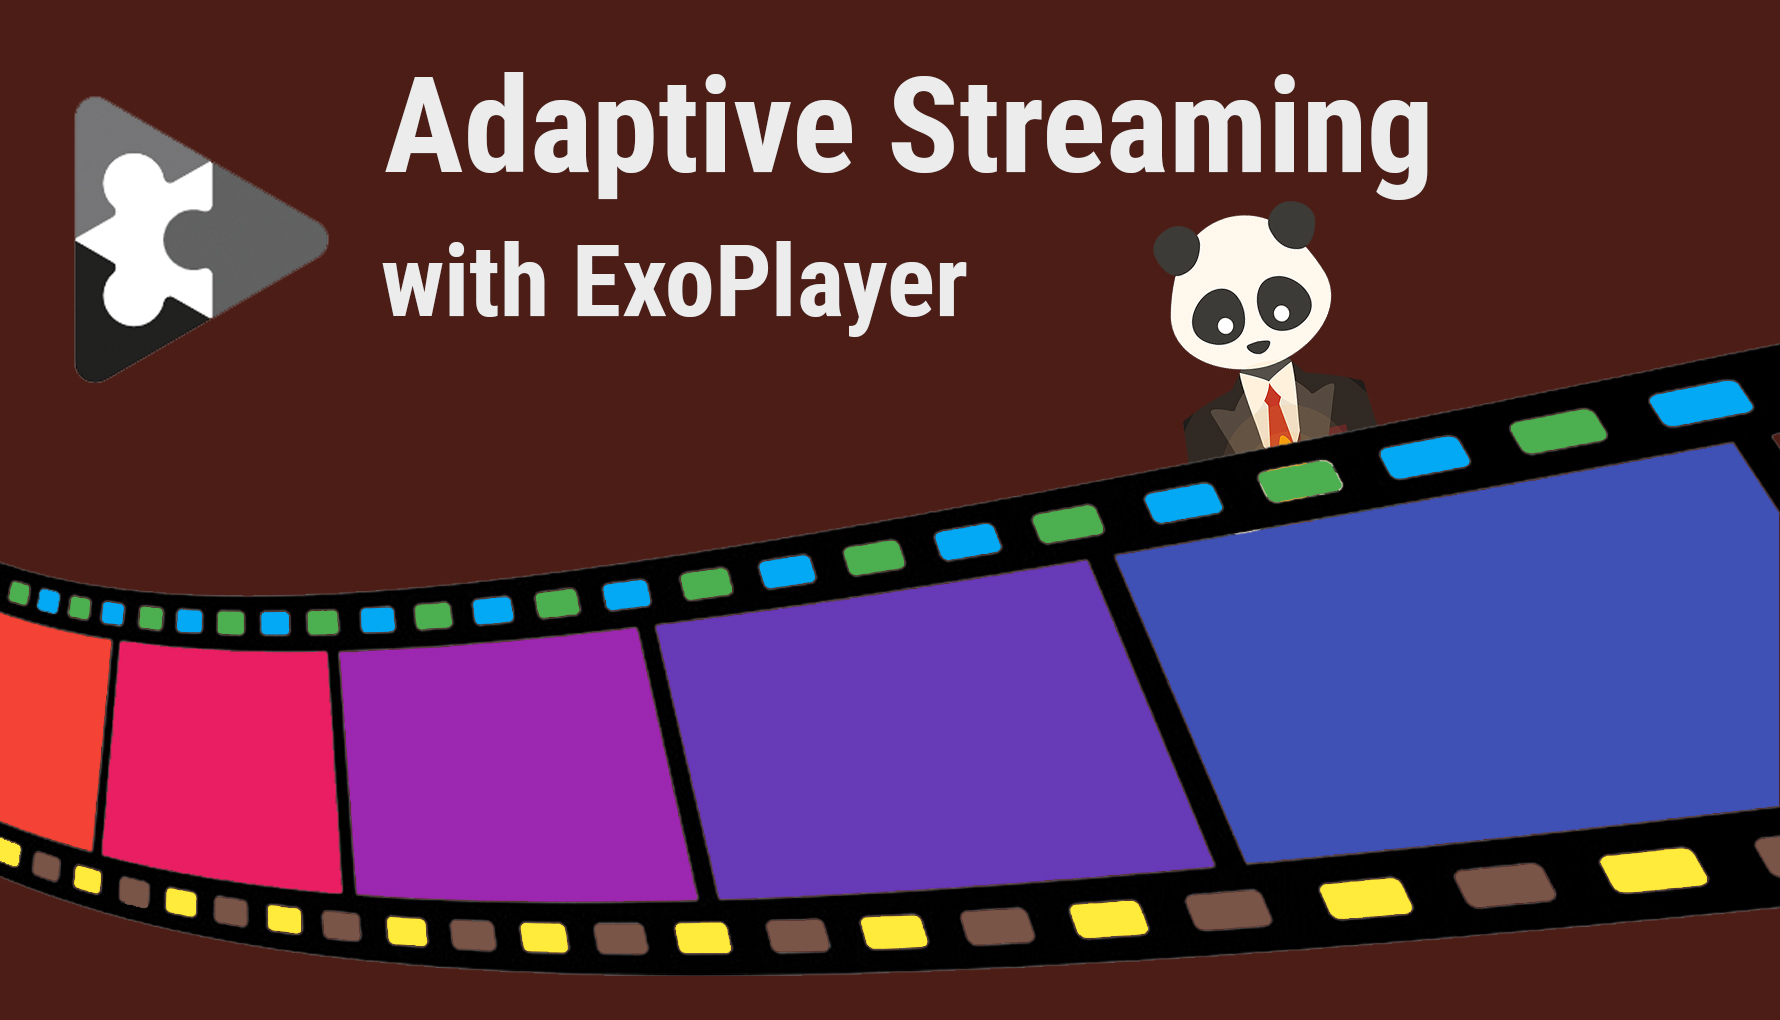 Adaptive Streaming with ExoPlayer on Android